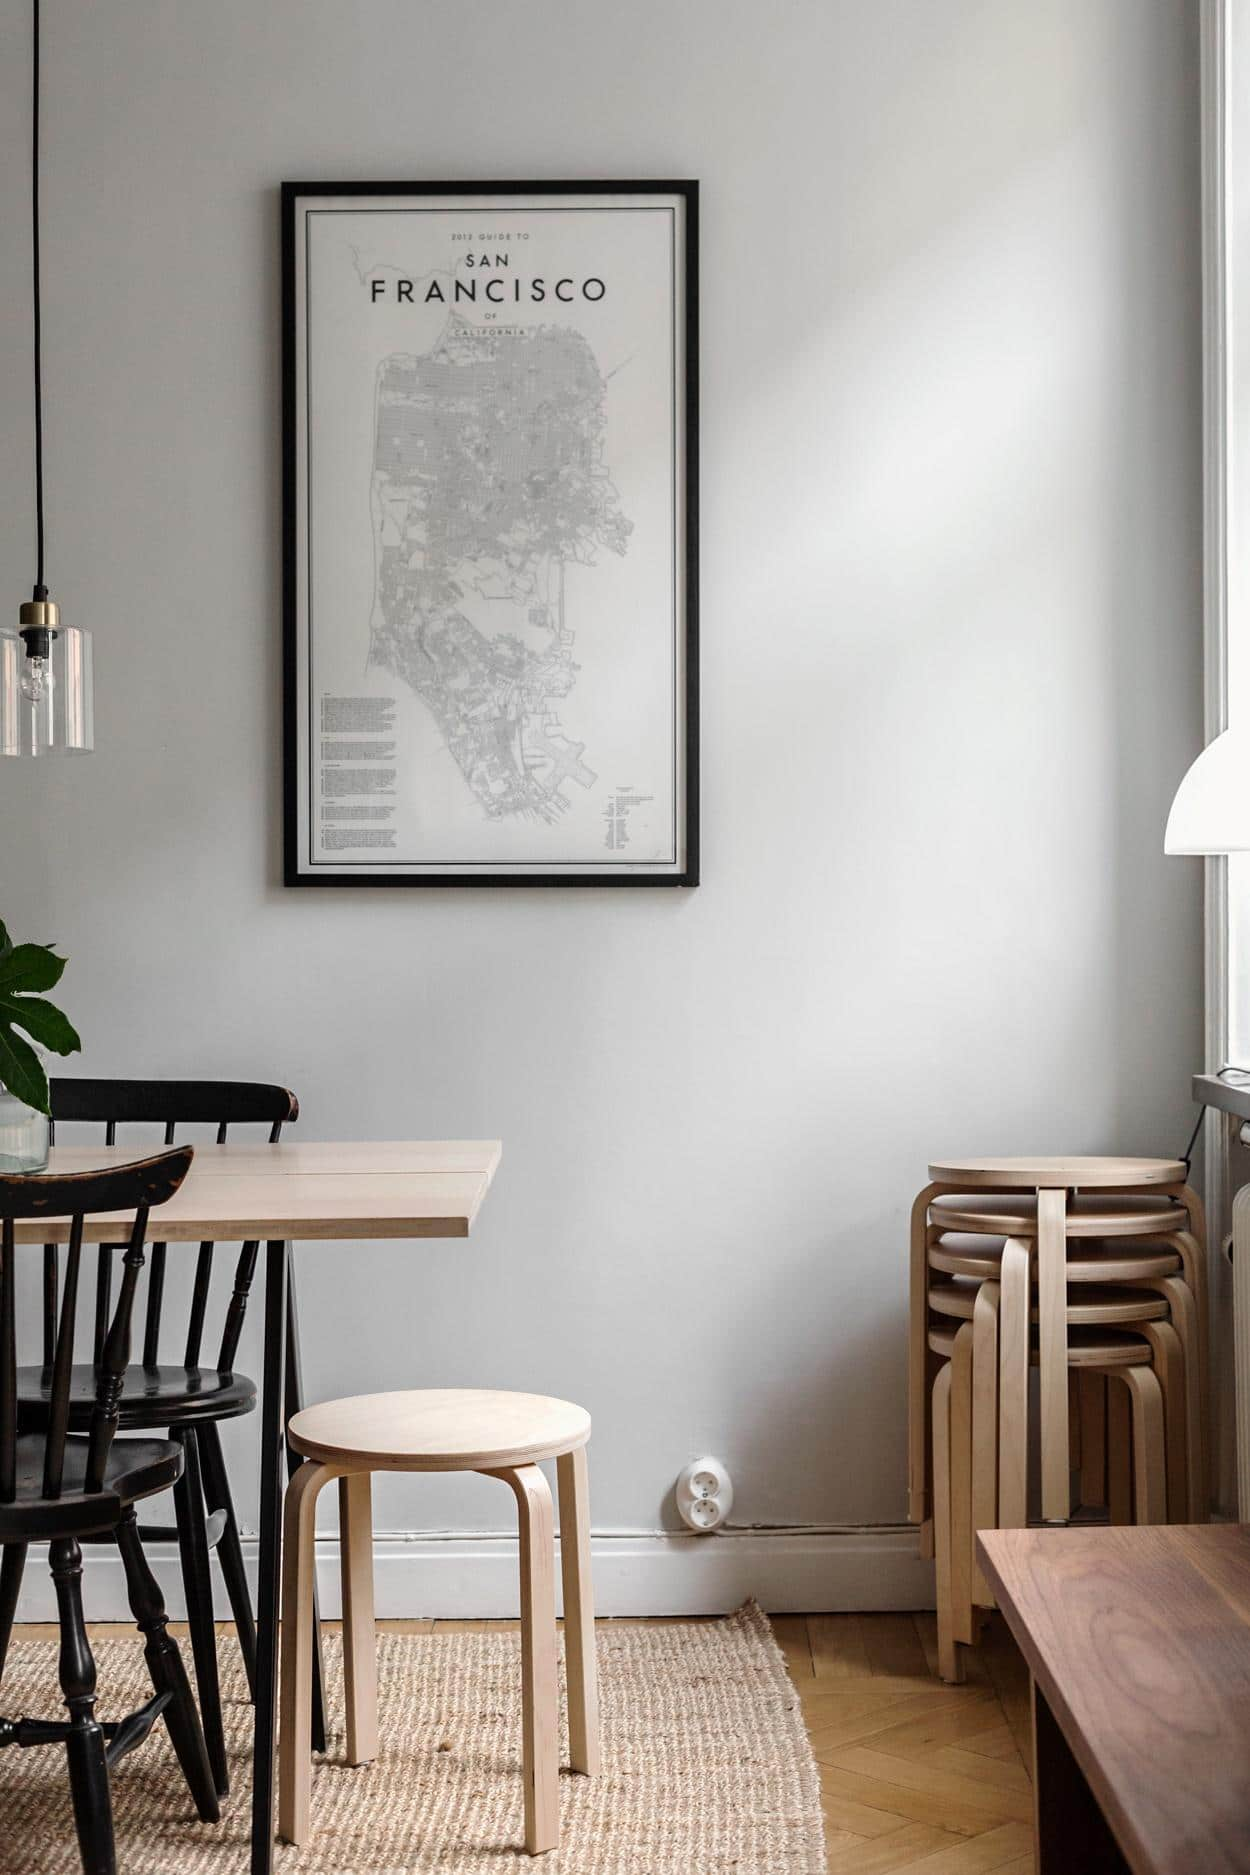 How To Decorate A Small Apartment: 10 Secrets - Gathering Dreams